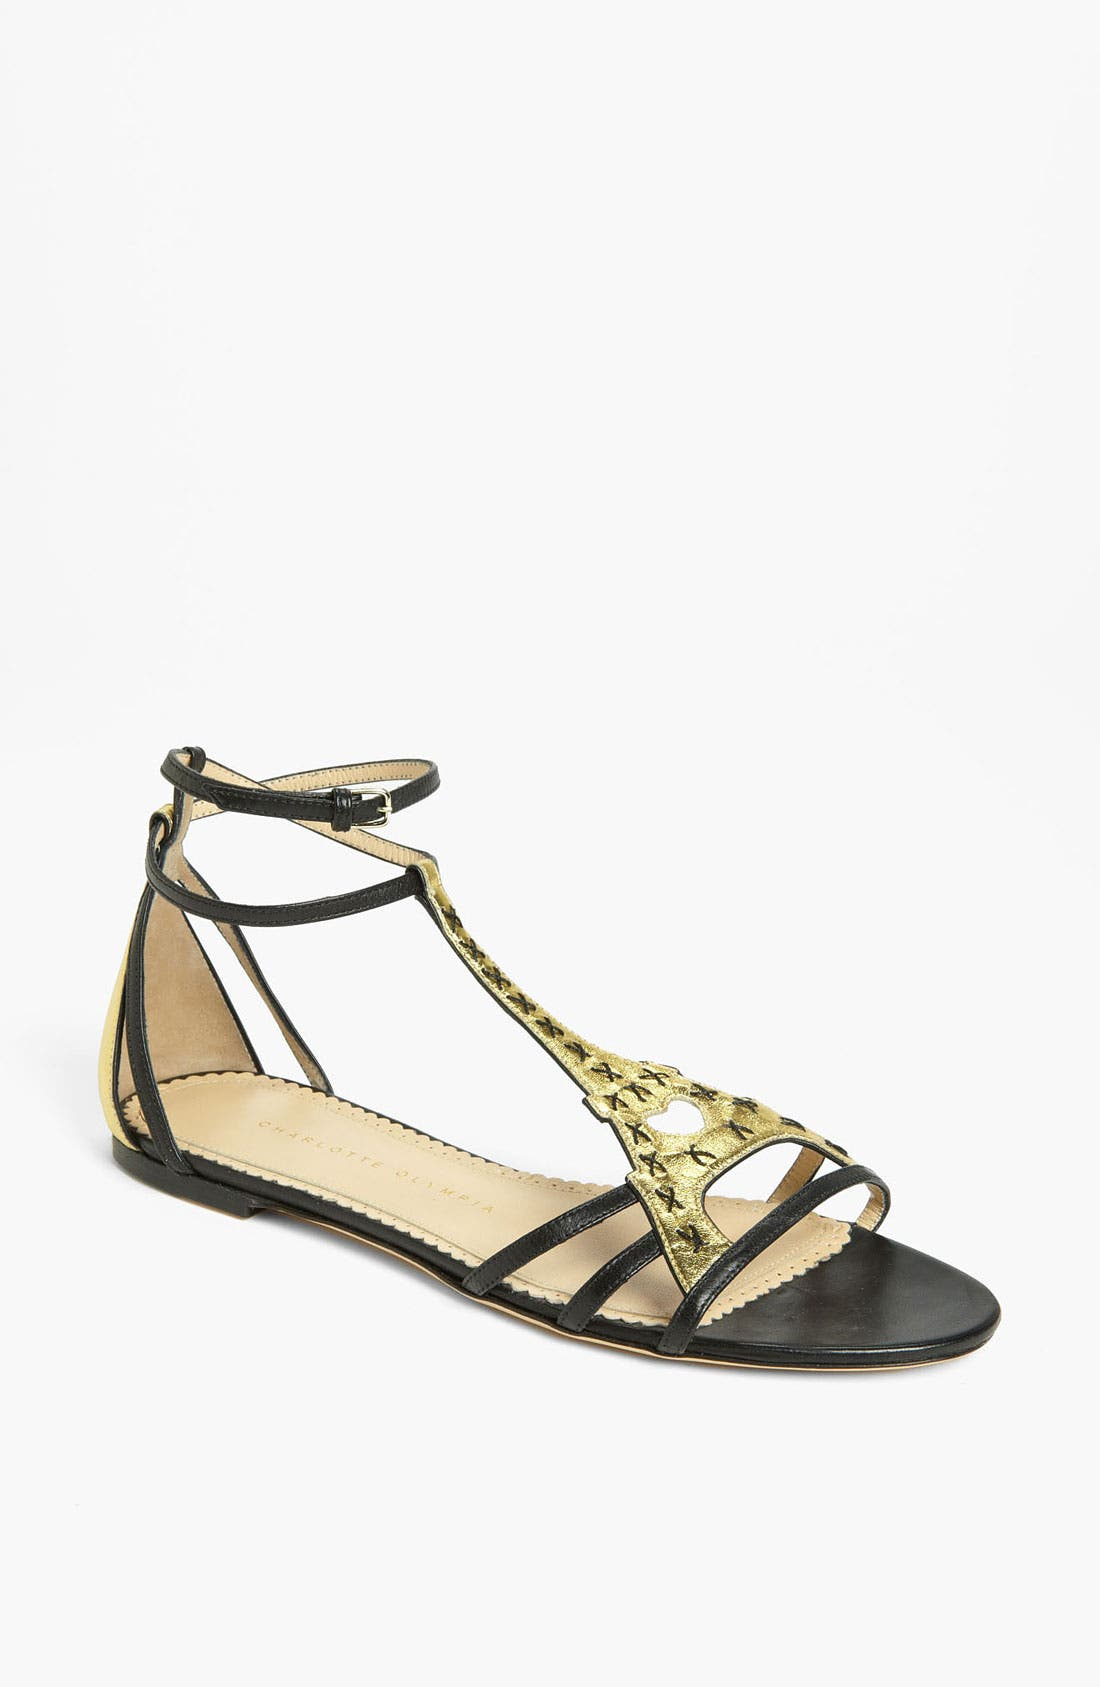 Alternate Image 1 Selected - Charlotte Olympia 'Parisienne' Sandal